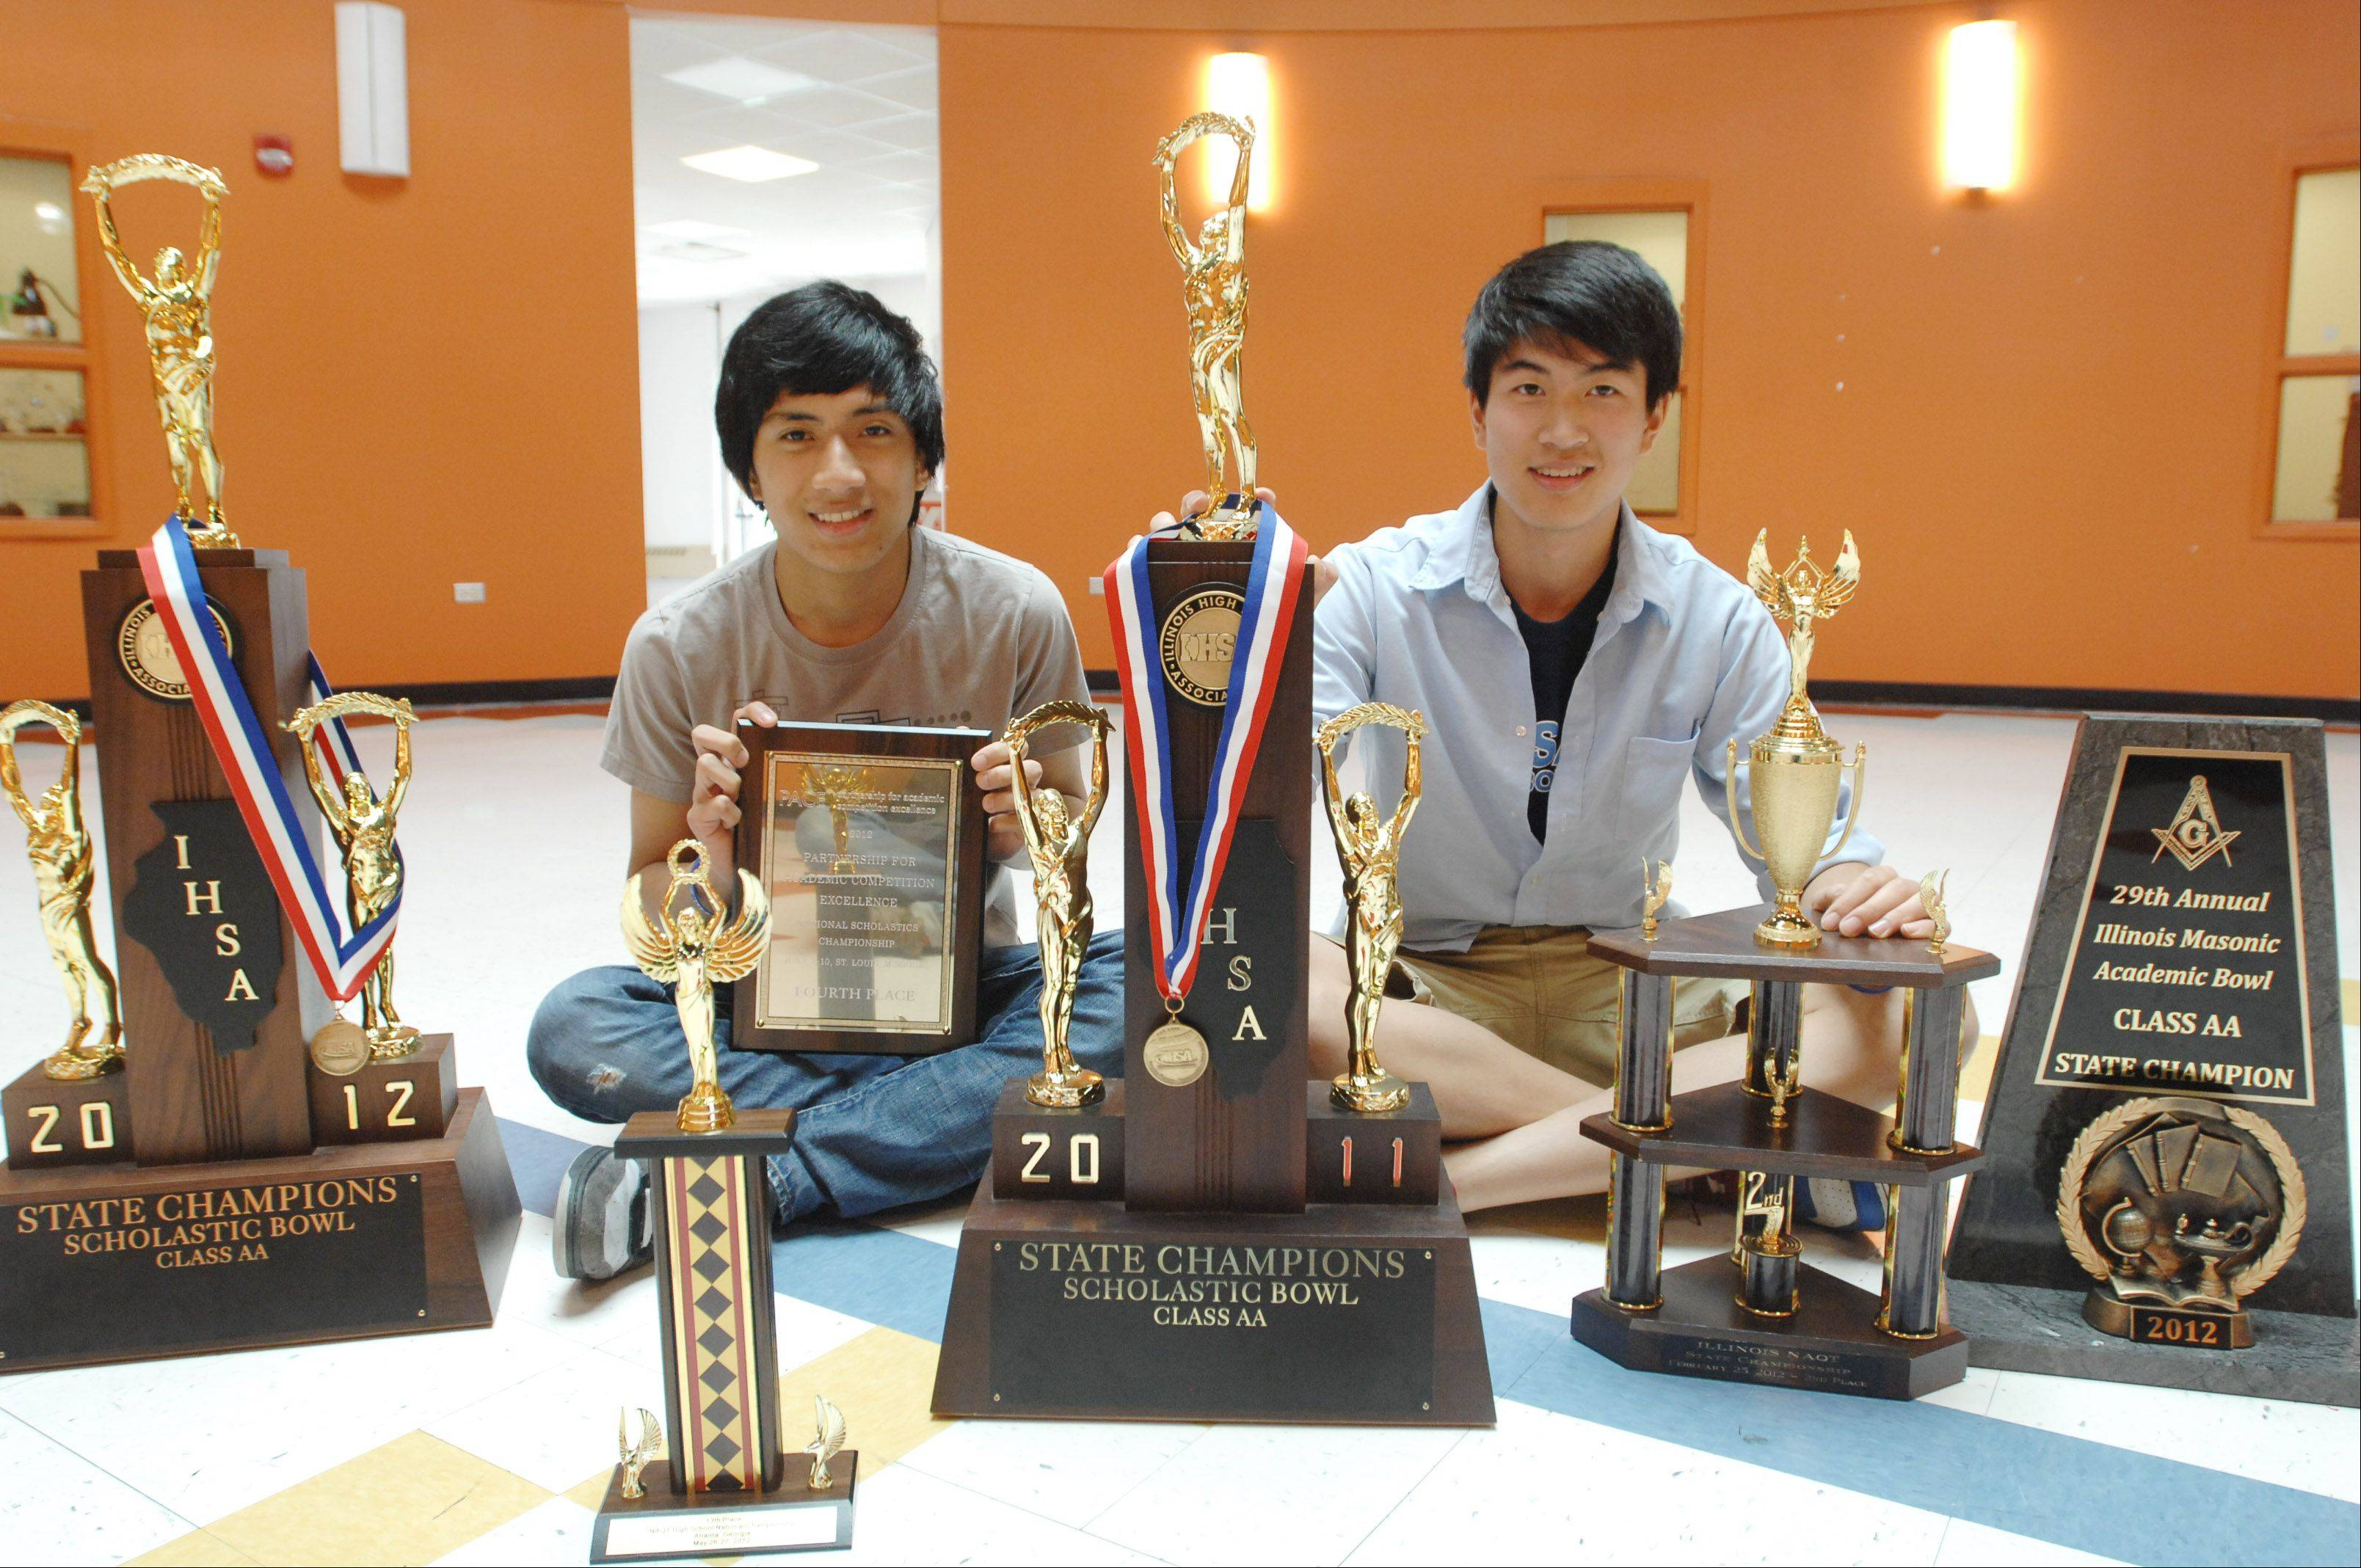 Eric Ordoñez of Aurora, left, and Webster Guan of Lisle, recent graduates of the Illinois Mathematics and Science Academy in Aurora, were co-captains of the school's quiz bowl team, which won the state championship in 2011 and 2012 and placed fourth at a national competition in June.